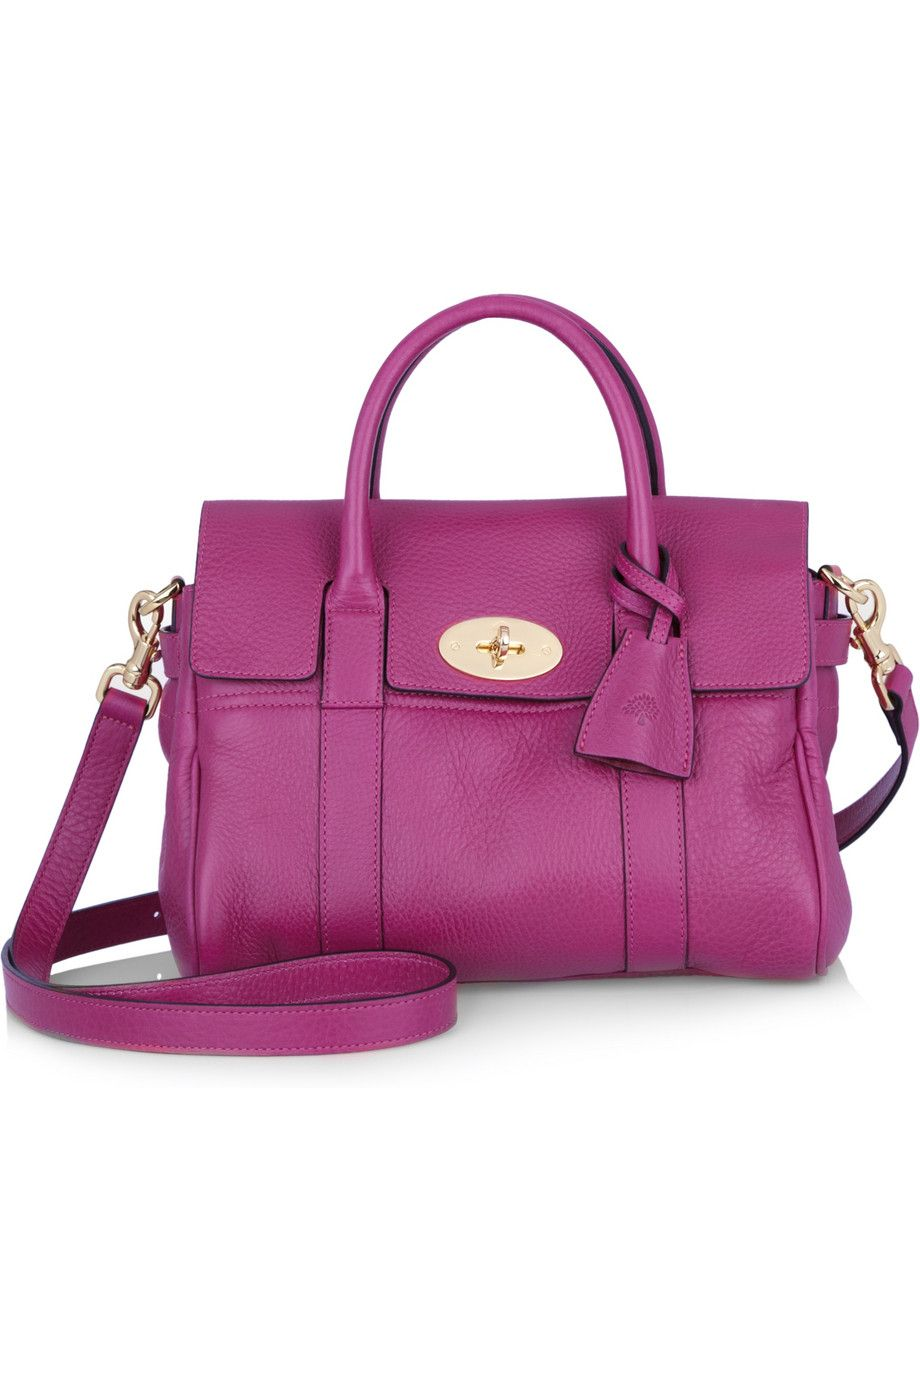 ec8c07765cf9 Mulberry Bayswater textured leather shoulder bag     will never afford lol